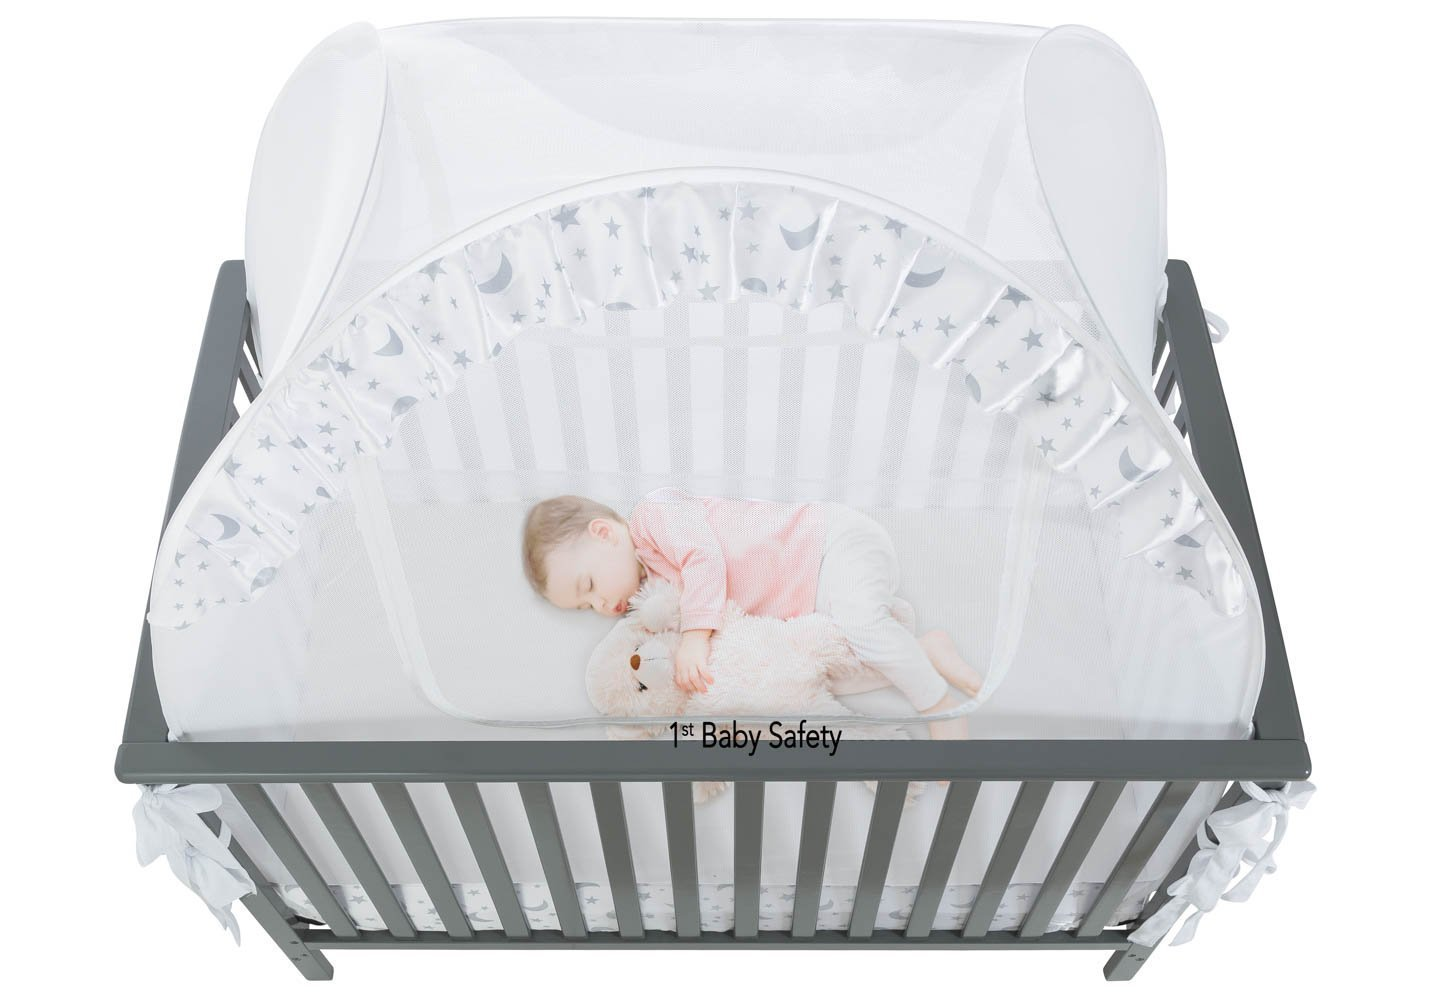 Amazon.com  Baby Crib Tent Safety Net Pop Up Canopy Cover - Never Recalled  Baby  sc 1 st  Amazon.com & Amazon.com : Baby Crib Tent Safety Net Pop Up Canopy Cover - Never ...